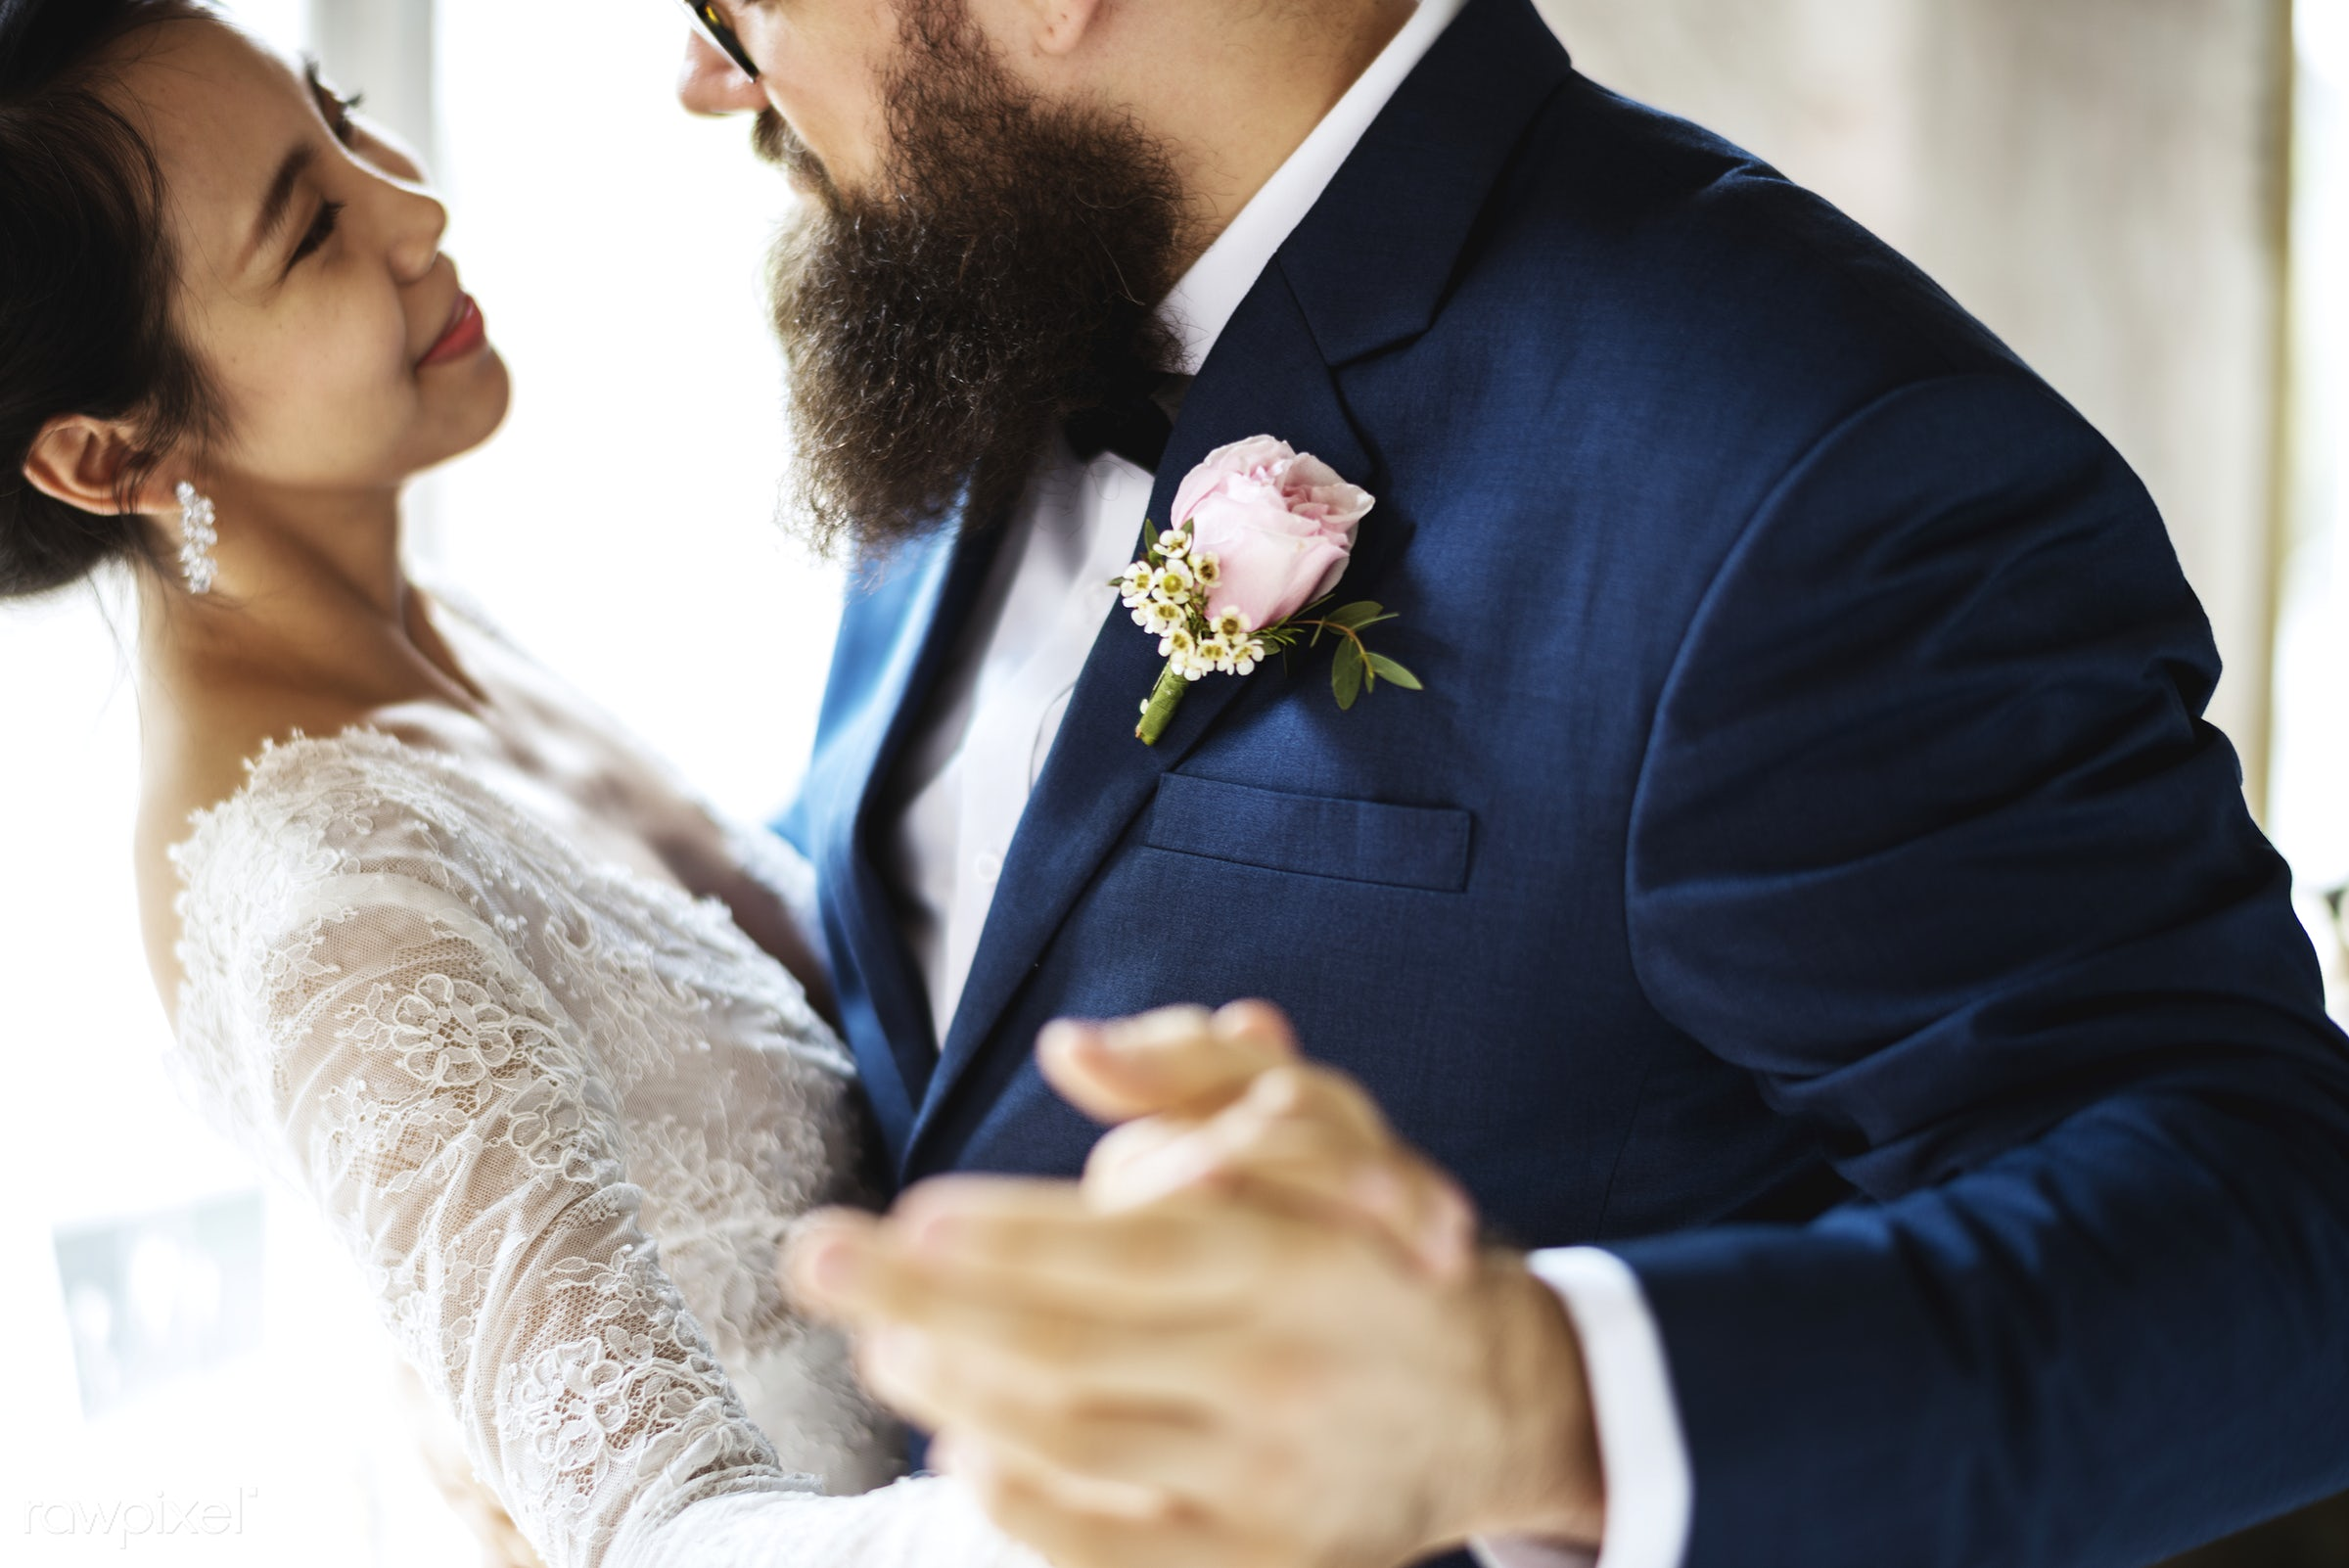 holding, occasion, husband, people, love, married, hands, gala, spouse, banquet, bride, cheerful, closeup, newlywed, fiance...